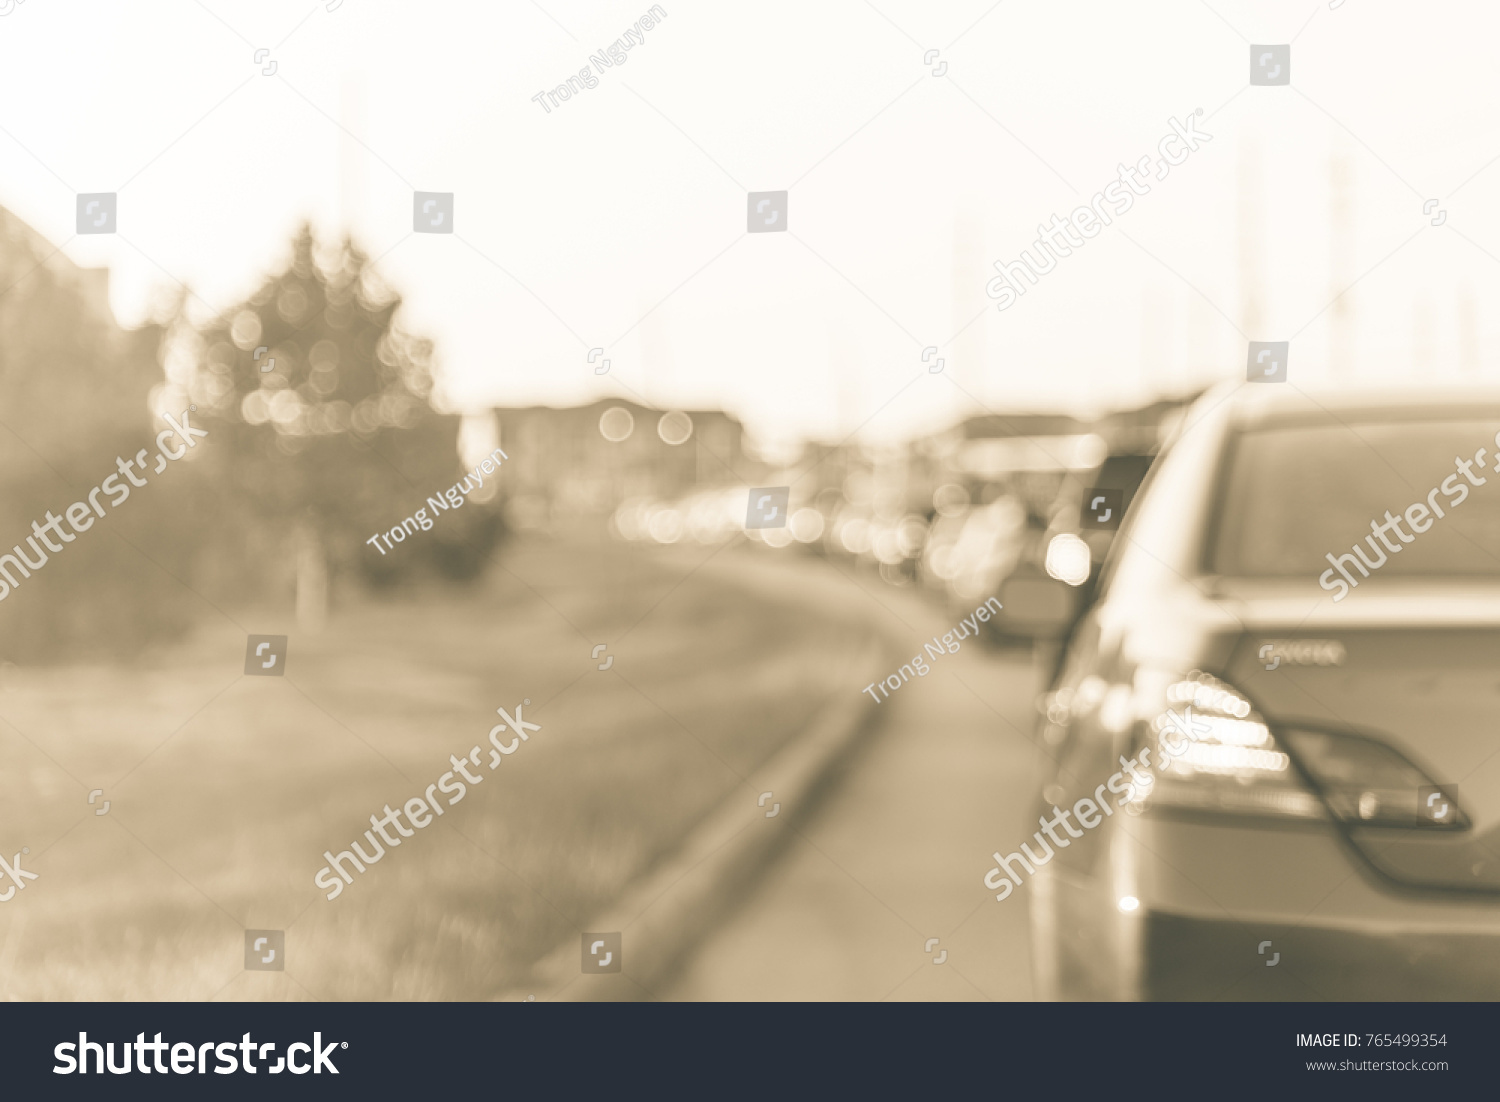 Blurred Busy Road Long Line Cars Stock Photo 765499354 - Shutterstock